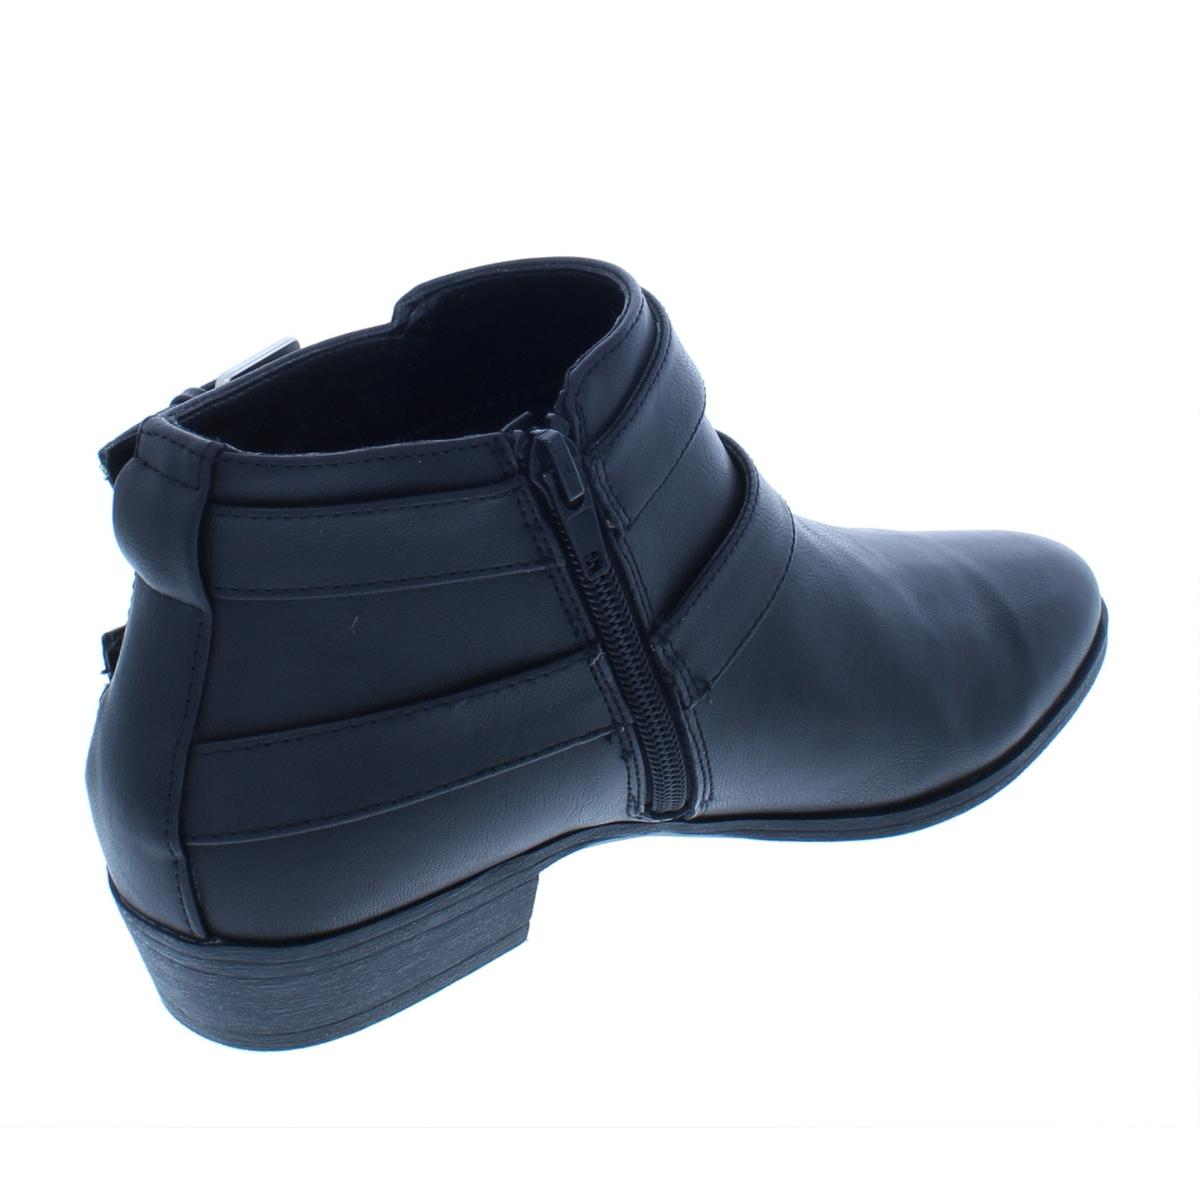 Style & Co. Damenschuhe Deenah Ankle Round Toe Buckle Buckle Toe Booties Schuhes BHFO ... 143d25